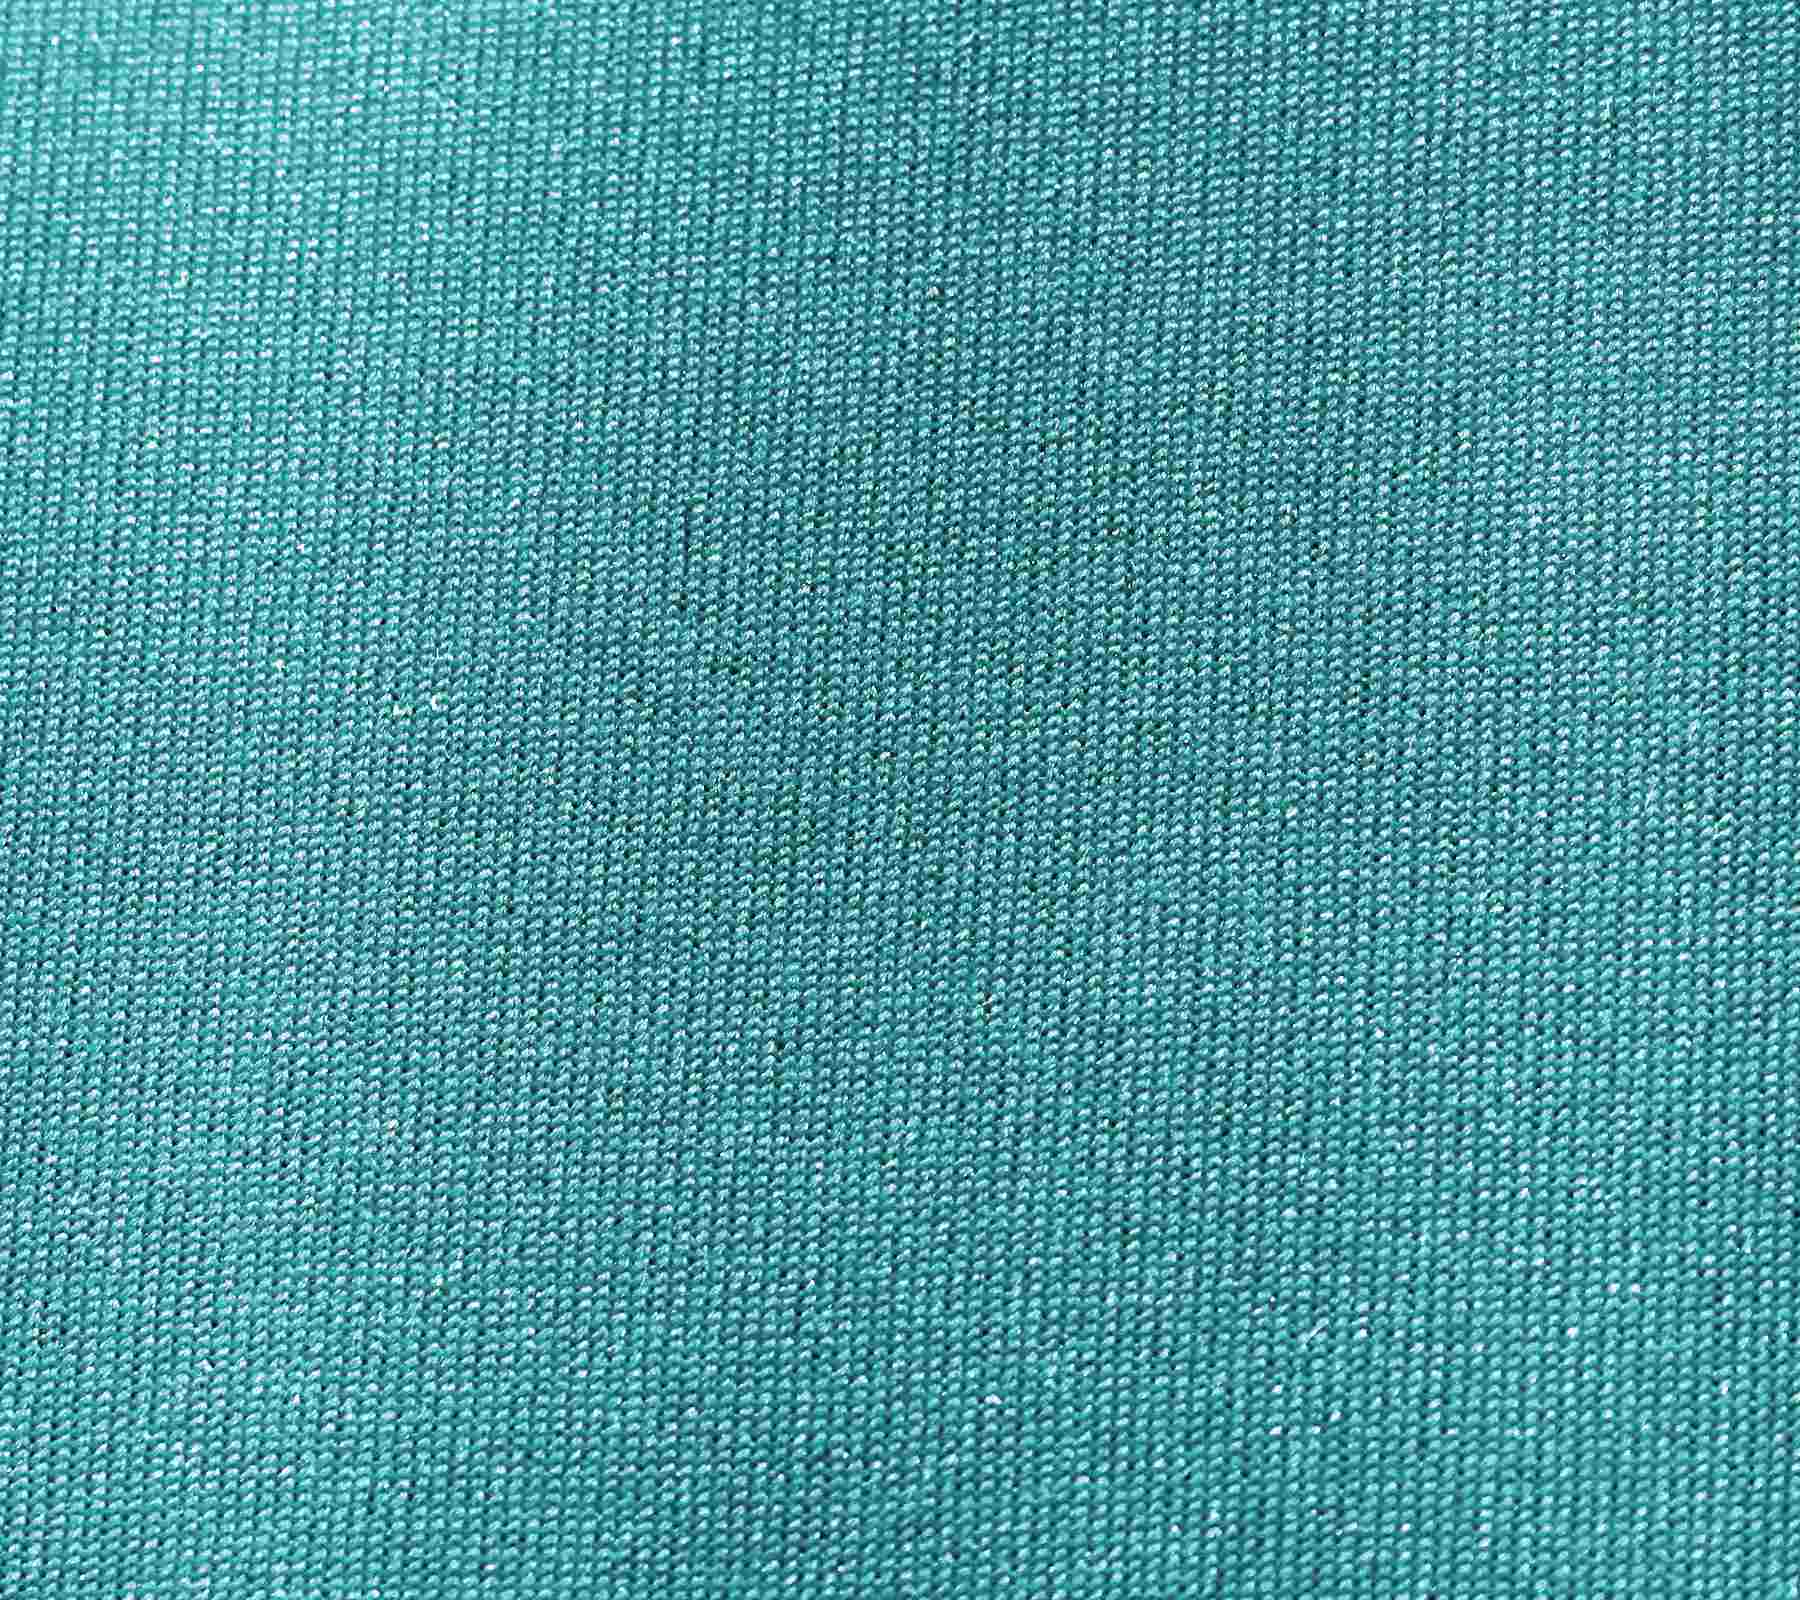 Teal woven nylon fabric 1800x1600 background image for Teal wallpaper